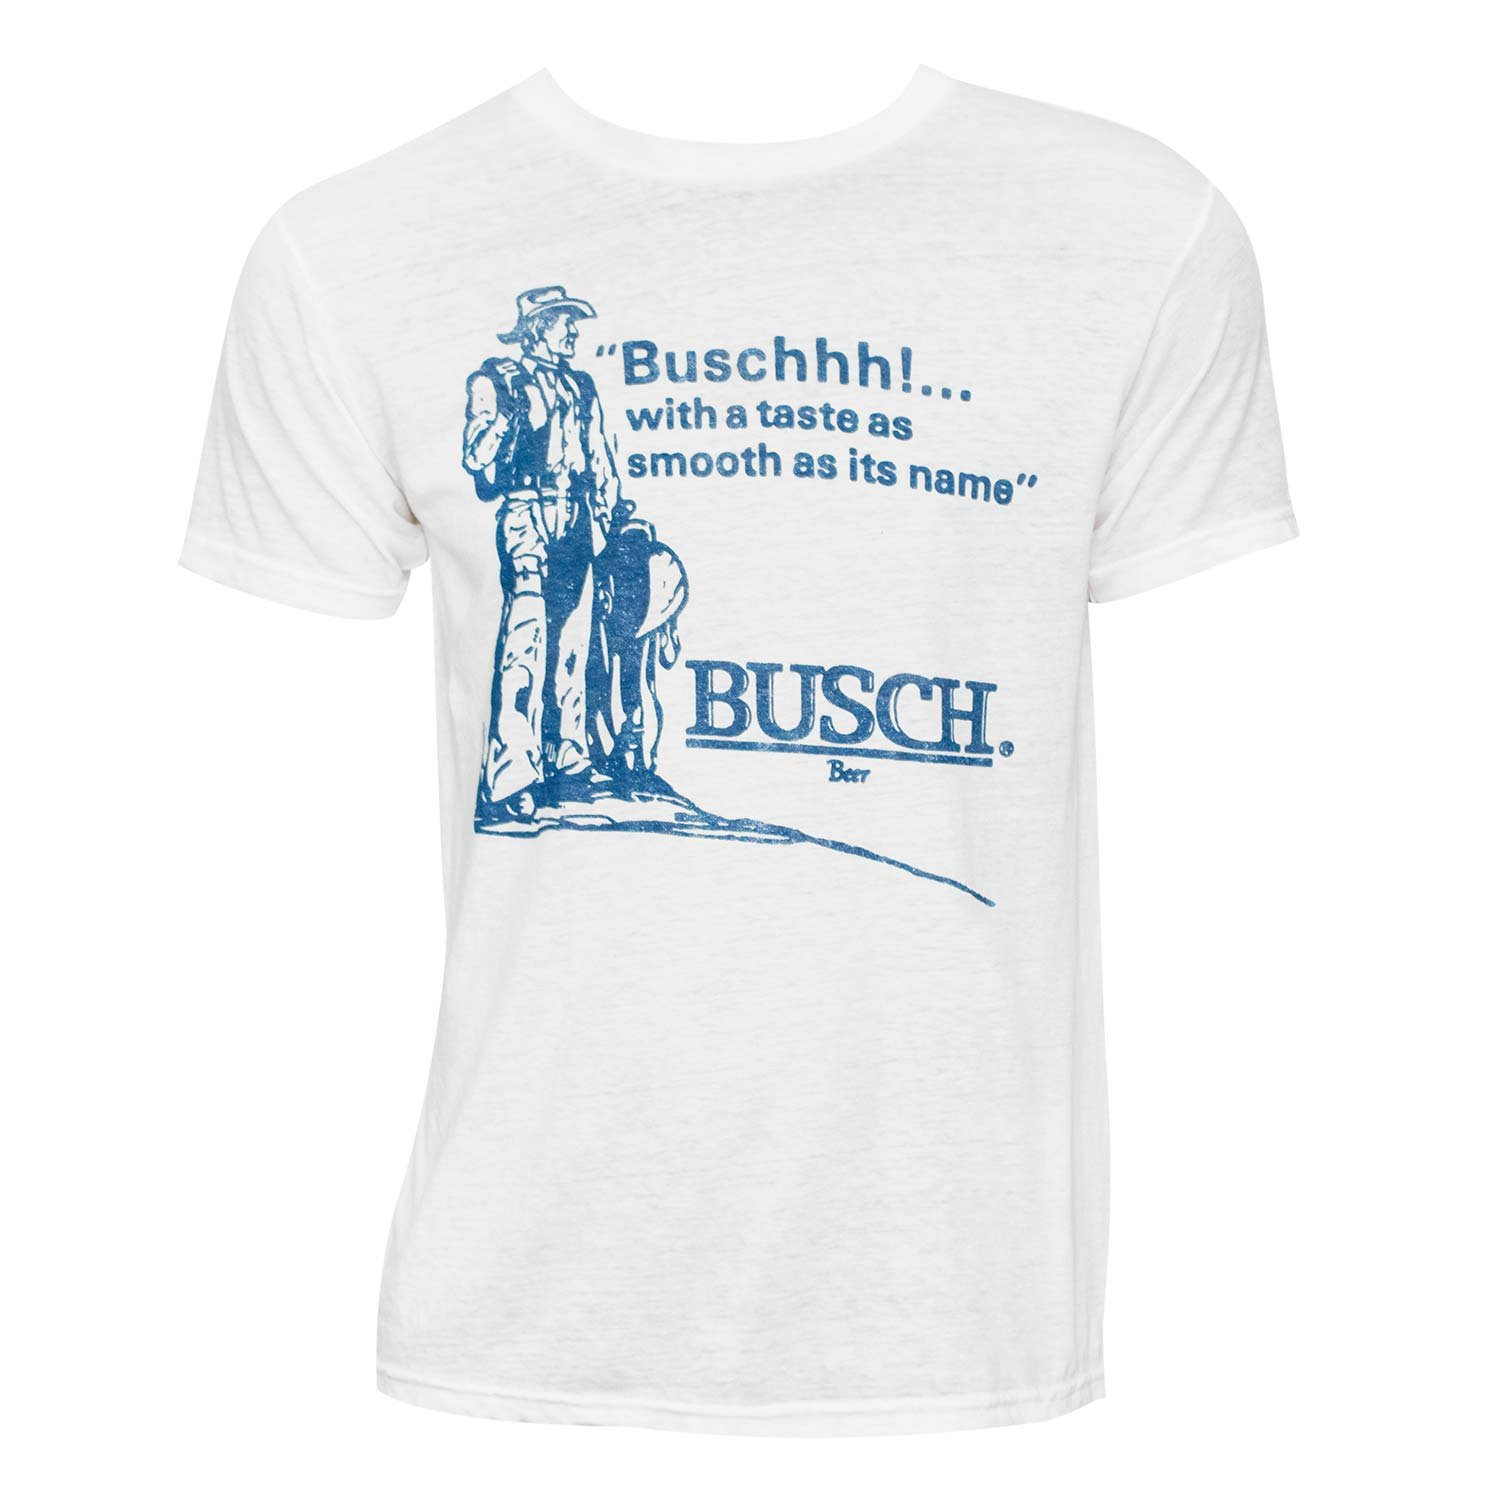 5342cd2a Amazon.com: Men's Busch Taste T-Shirt XL: Clothing